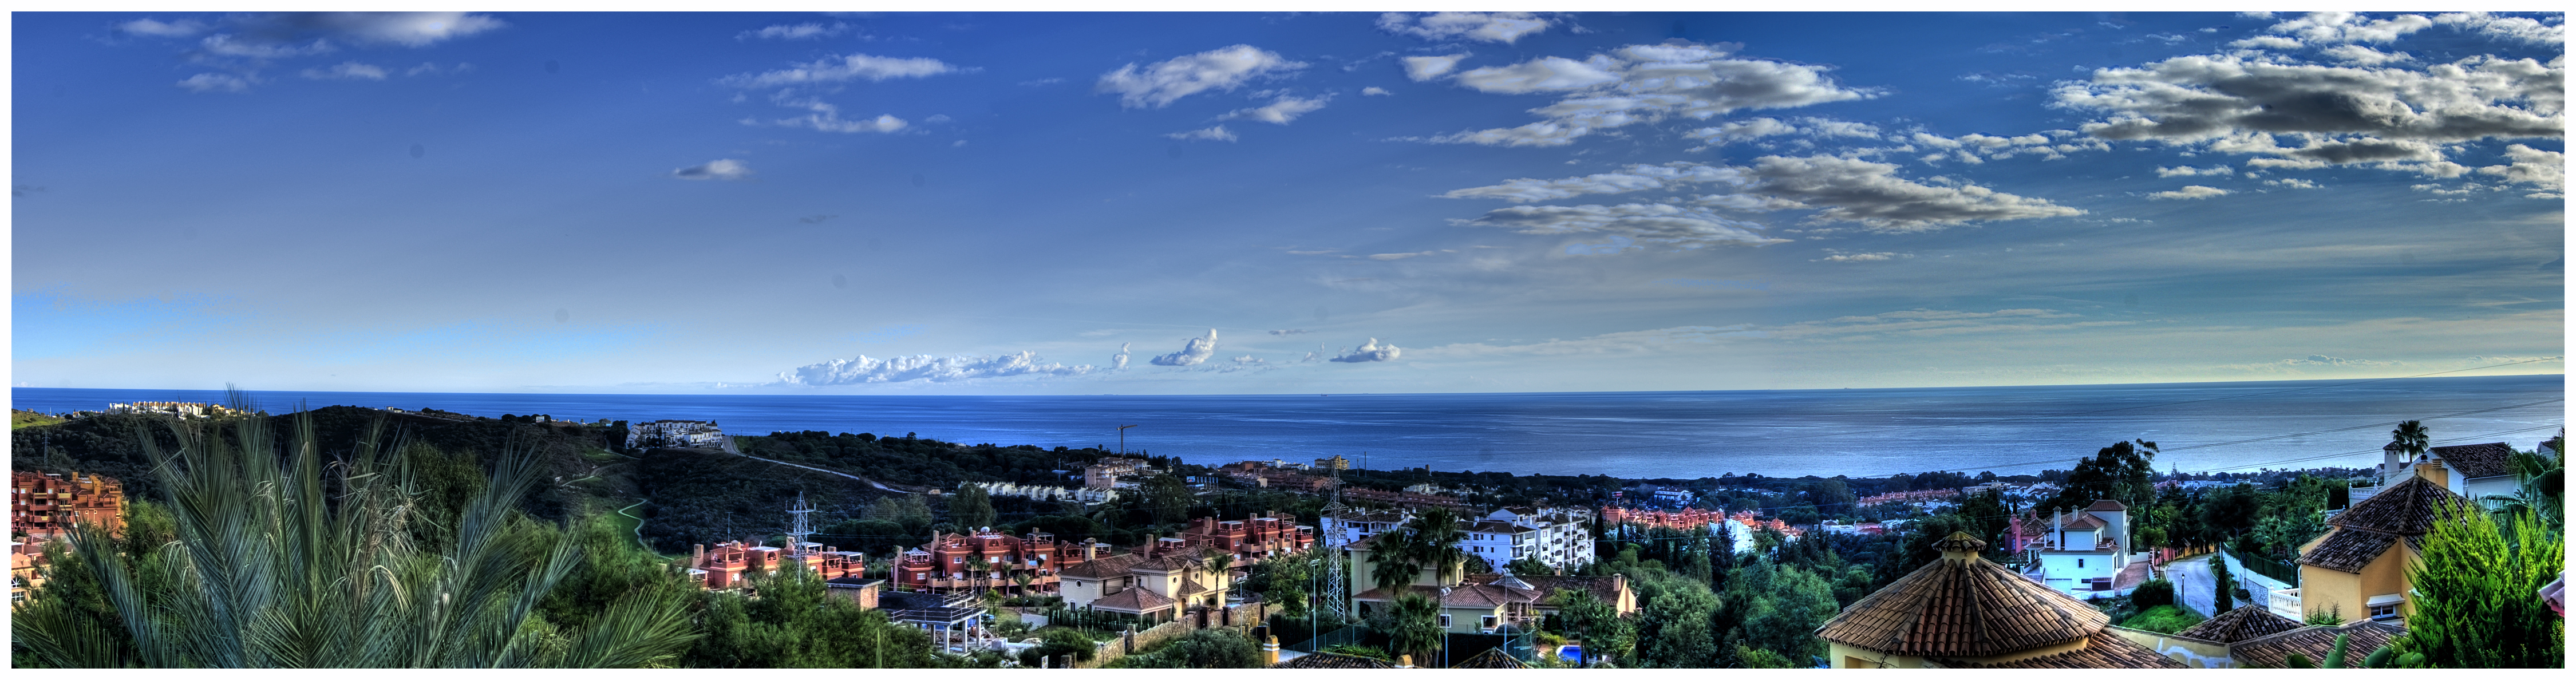 costa del sol panorama hdr by 1 rob 1 d368vhn